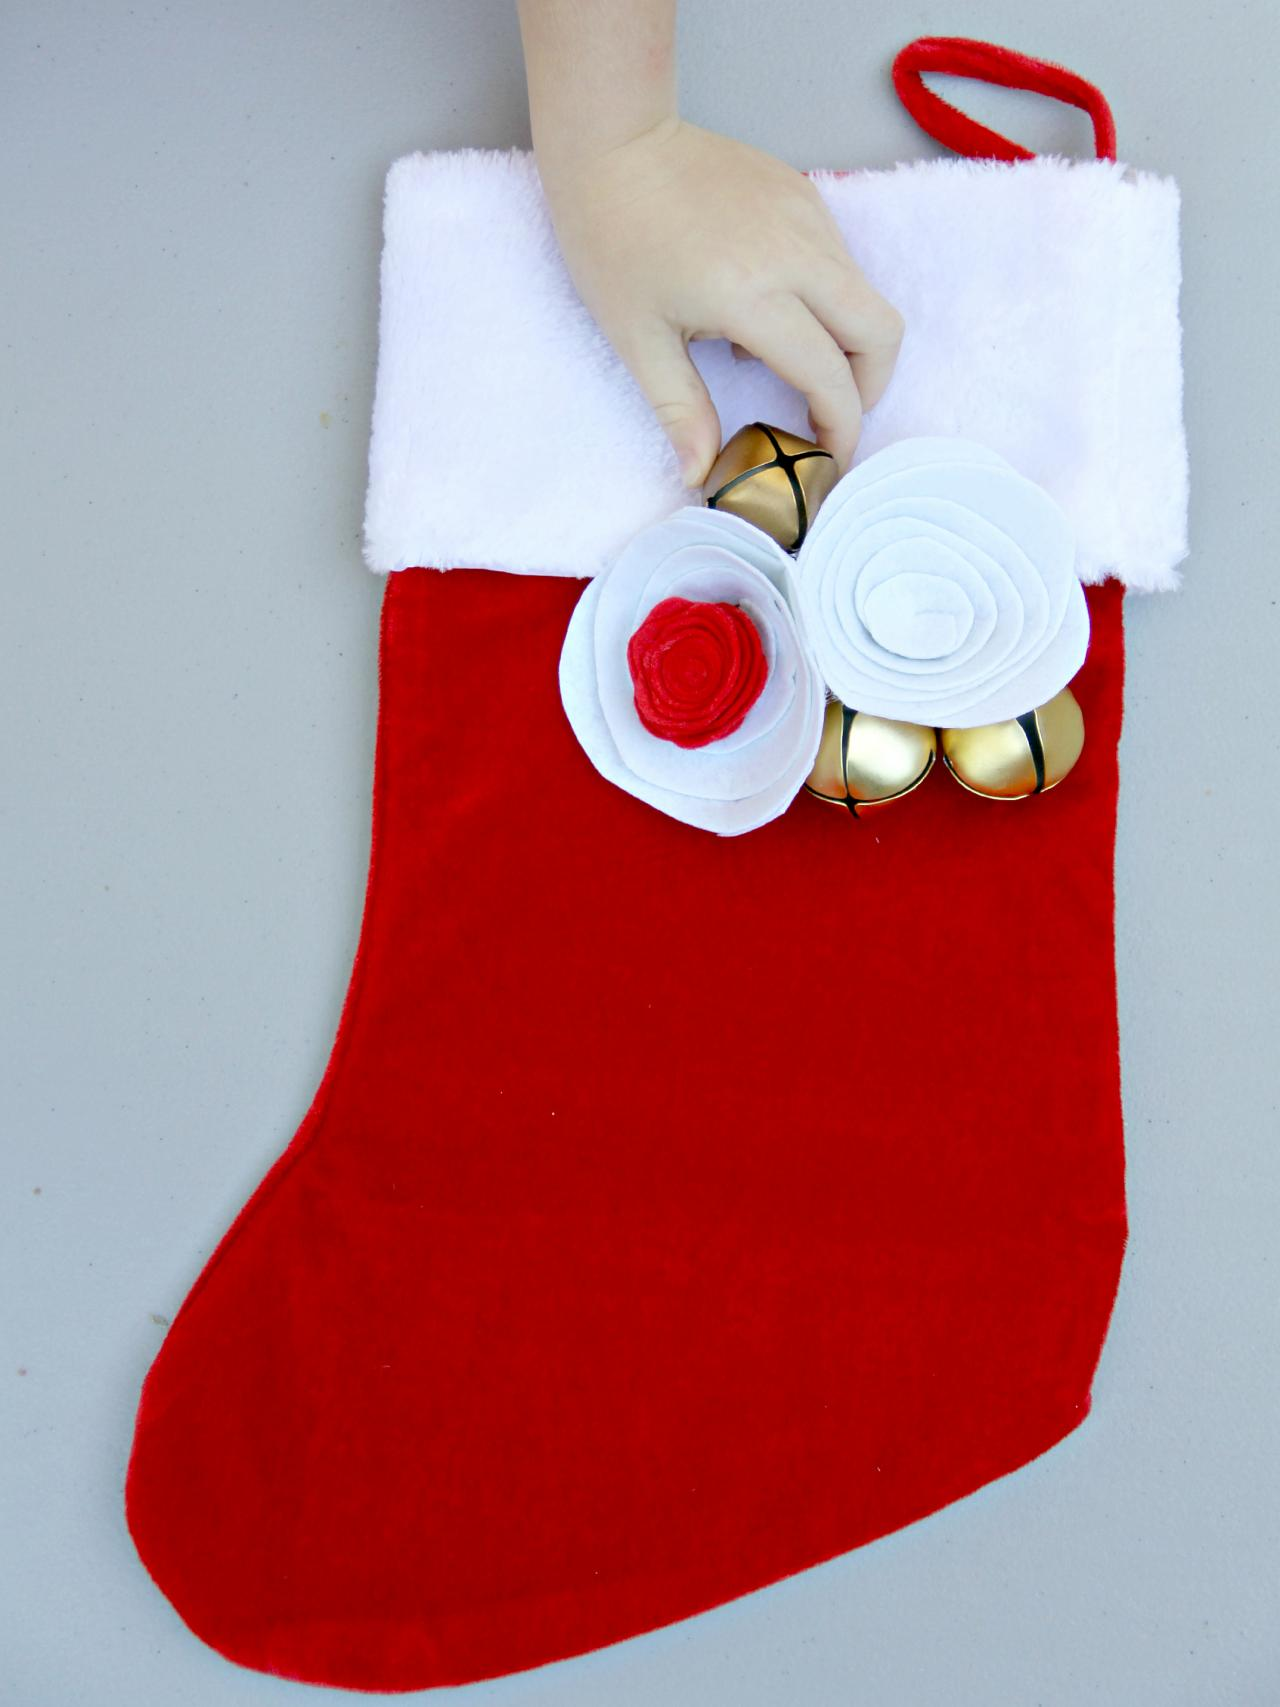 ci jess abbott embellish christmas stockings cutting flower6_h - Christmas Stocking Decorating Ideas